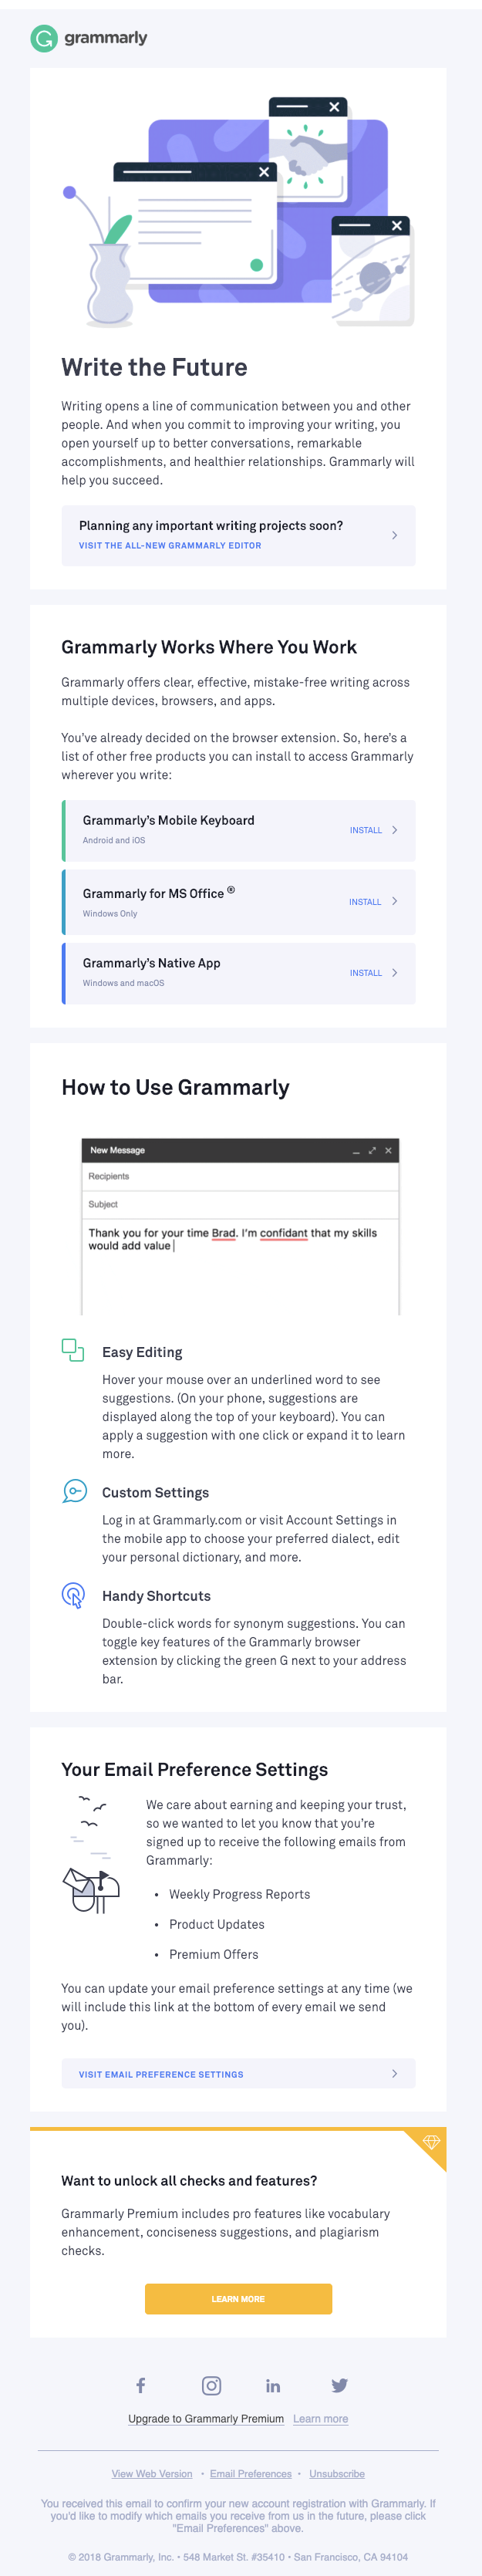 "Grammarly welcome email ""write the future"""